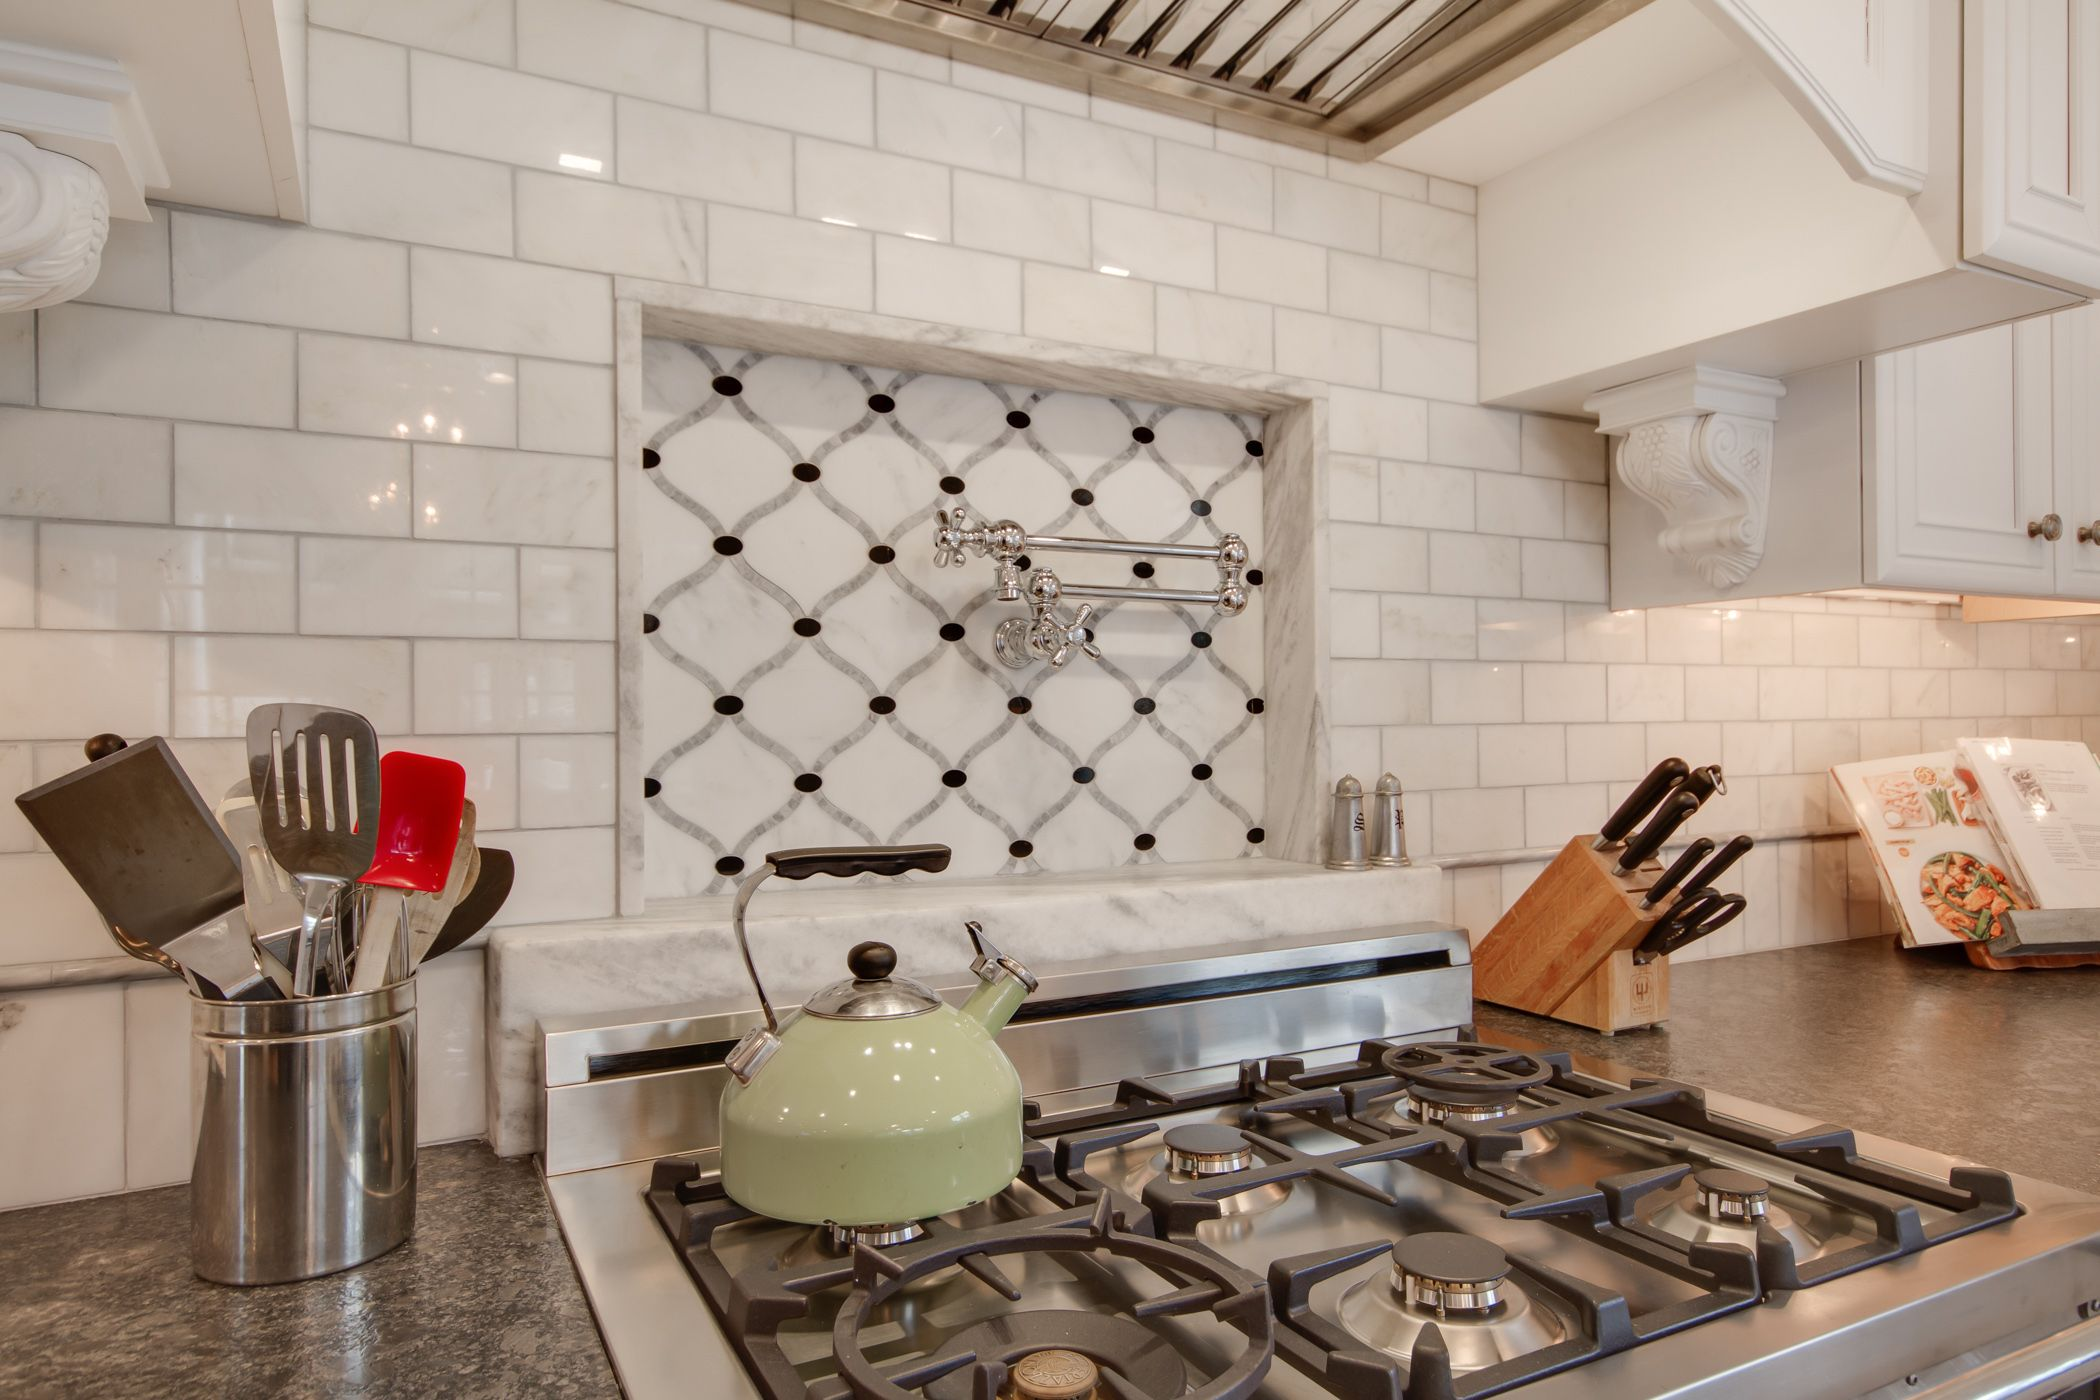 Dream kitchen kitchen ideas pinterest marble subway tiles backsplash is new calacatta marble subway tile with a beautiful waterjet mosaic insert over the stove kitchen by stoneshop from cherry hill nj dailygadgetfo Images